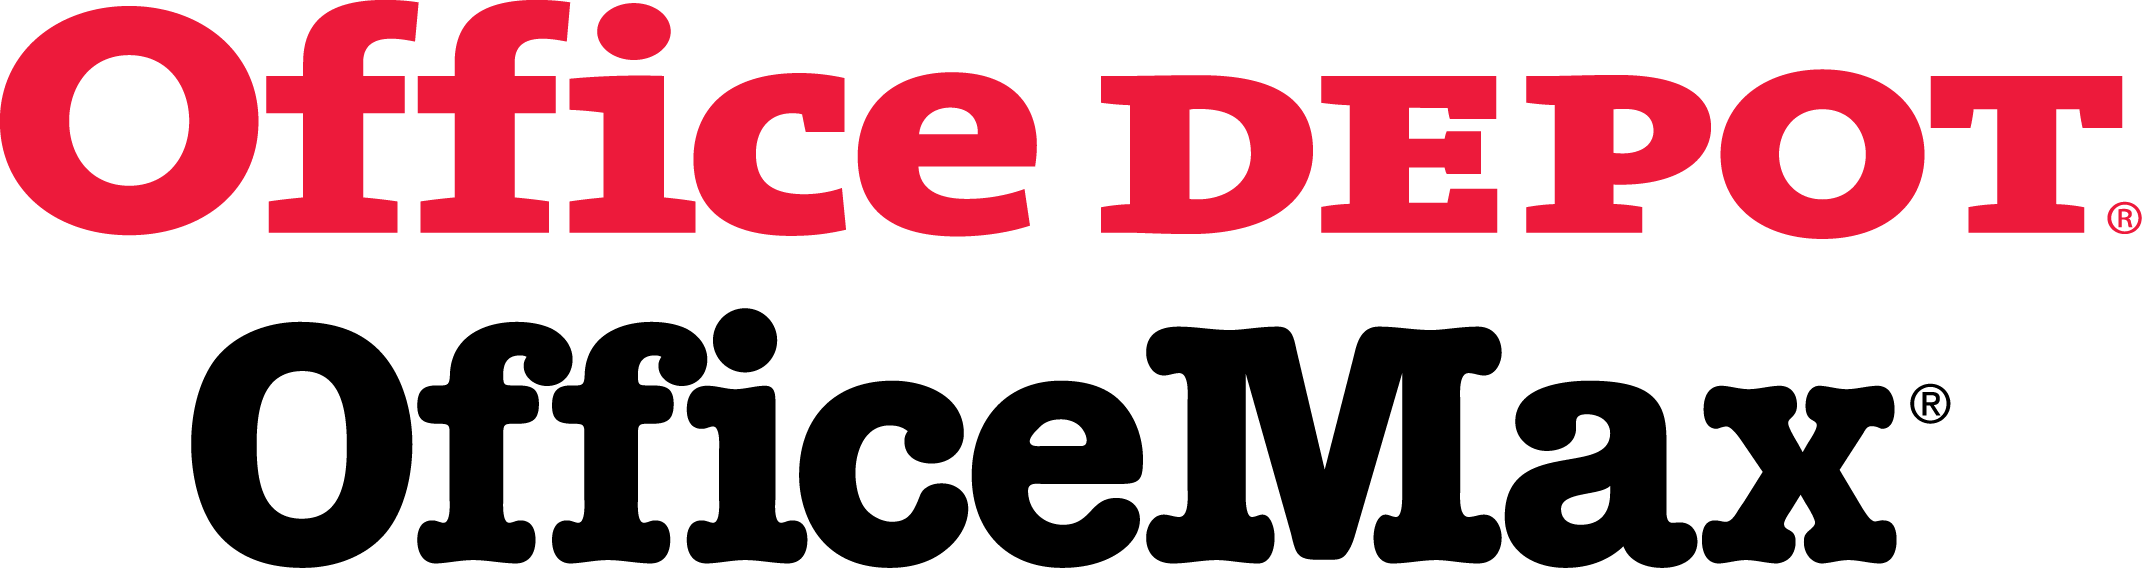 Office Depot-Max Logo